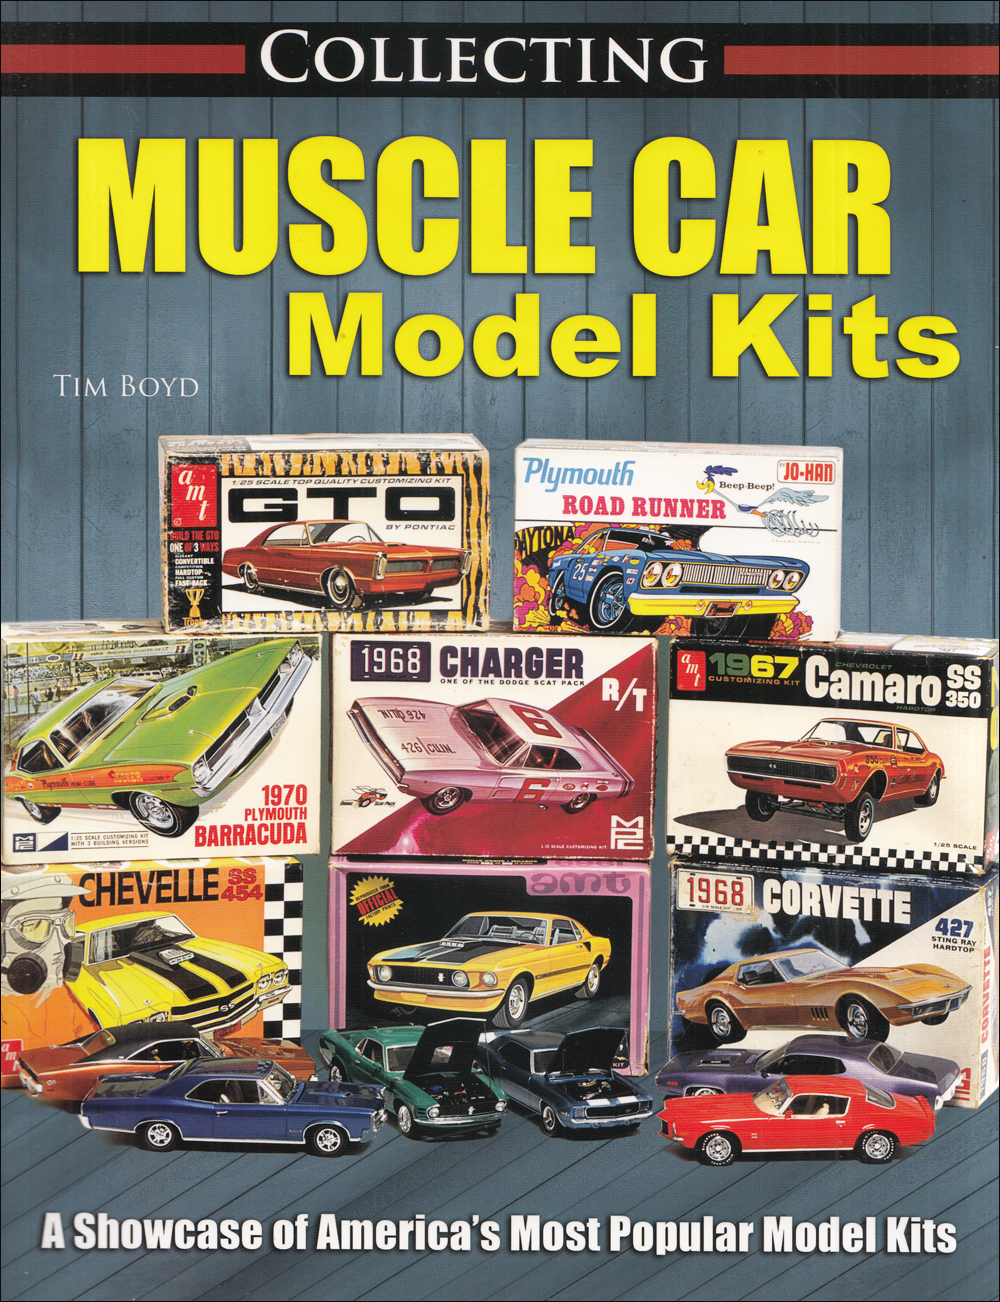 Collecting Muscle Car Model Kits